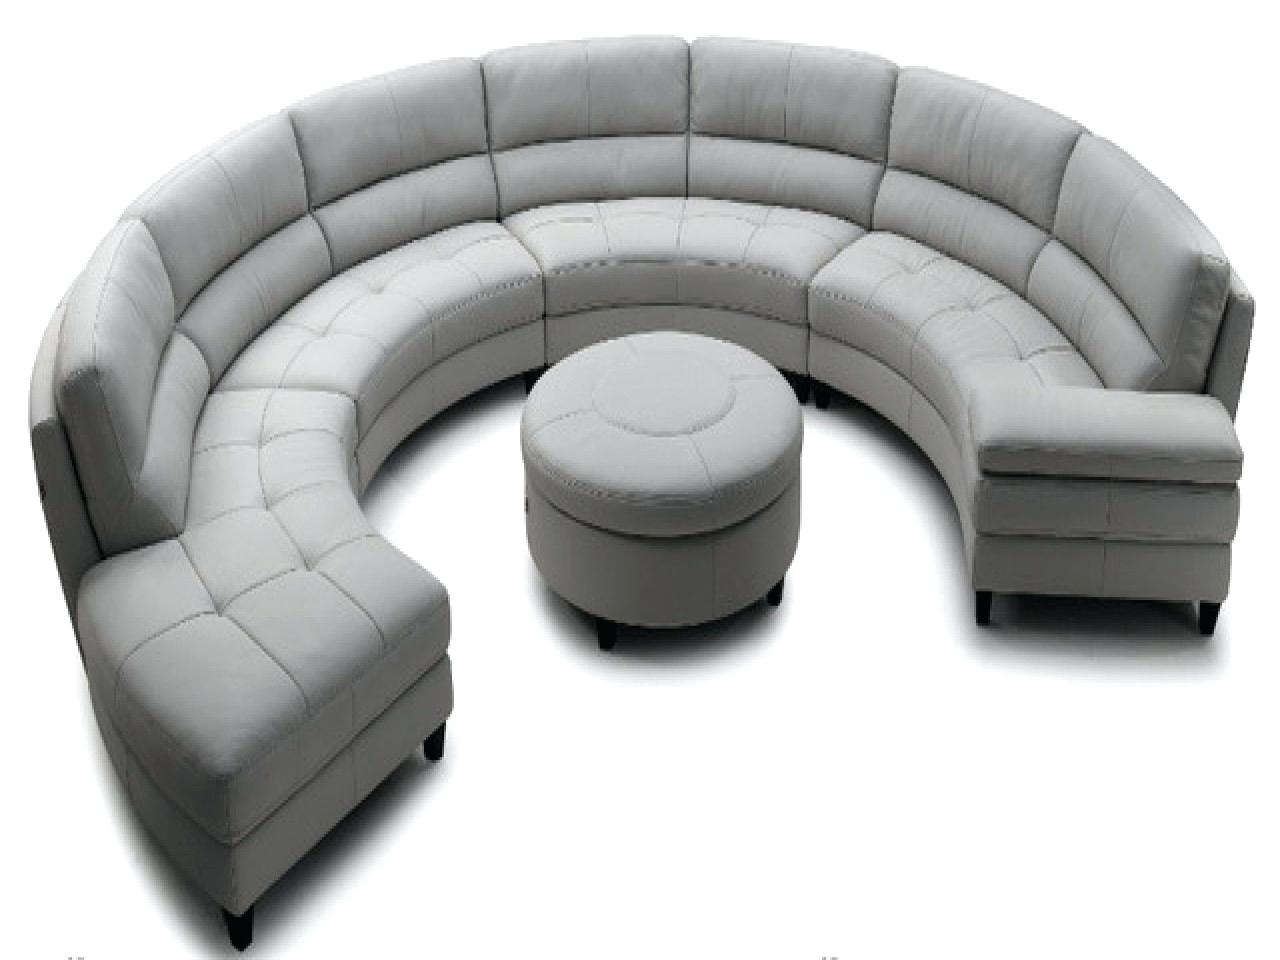 Well Known Circular Sectional Sofas In Circular Sectional Sofa Ed Modern Round Sofas Outdoor Curved (View 20 of 20)